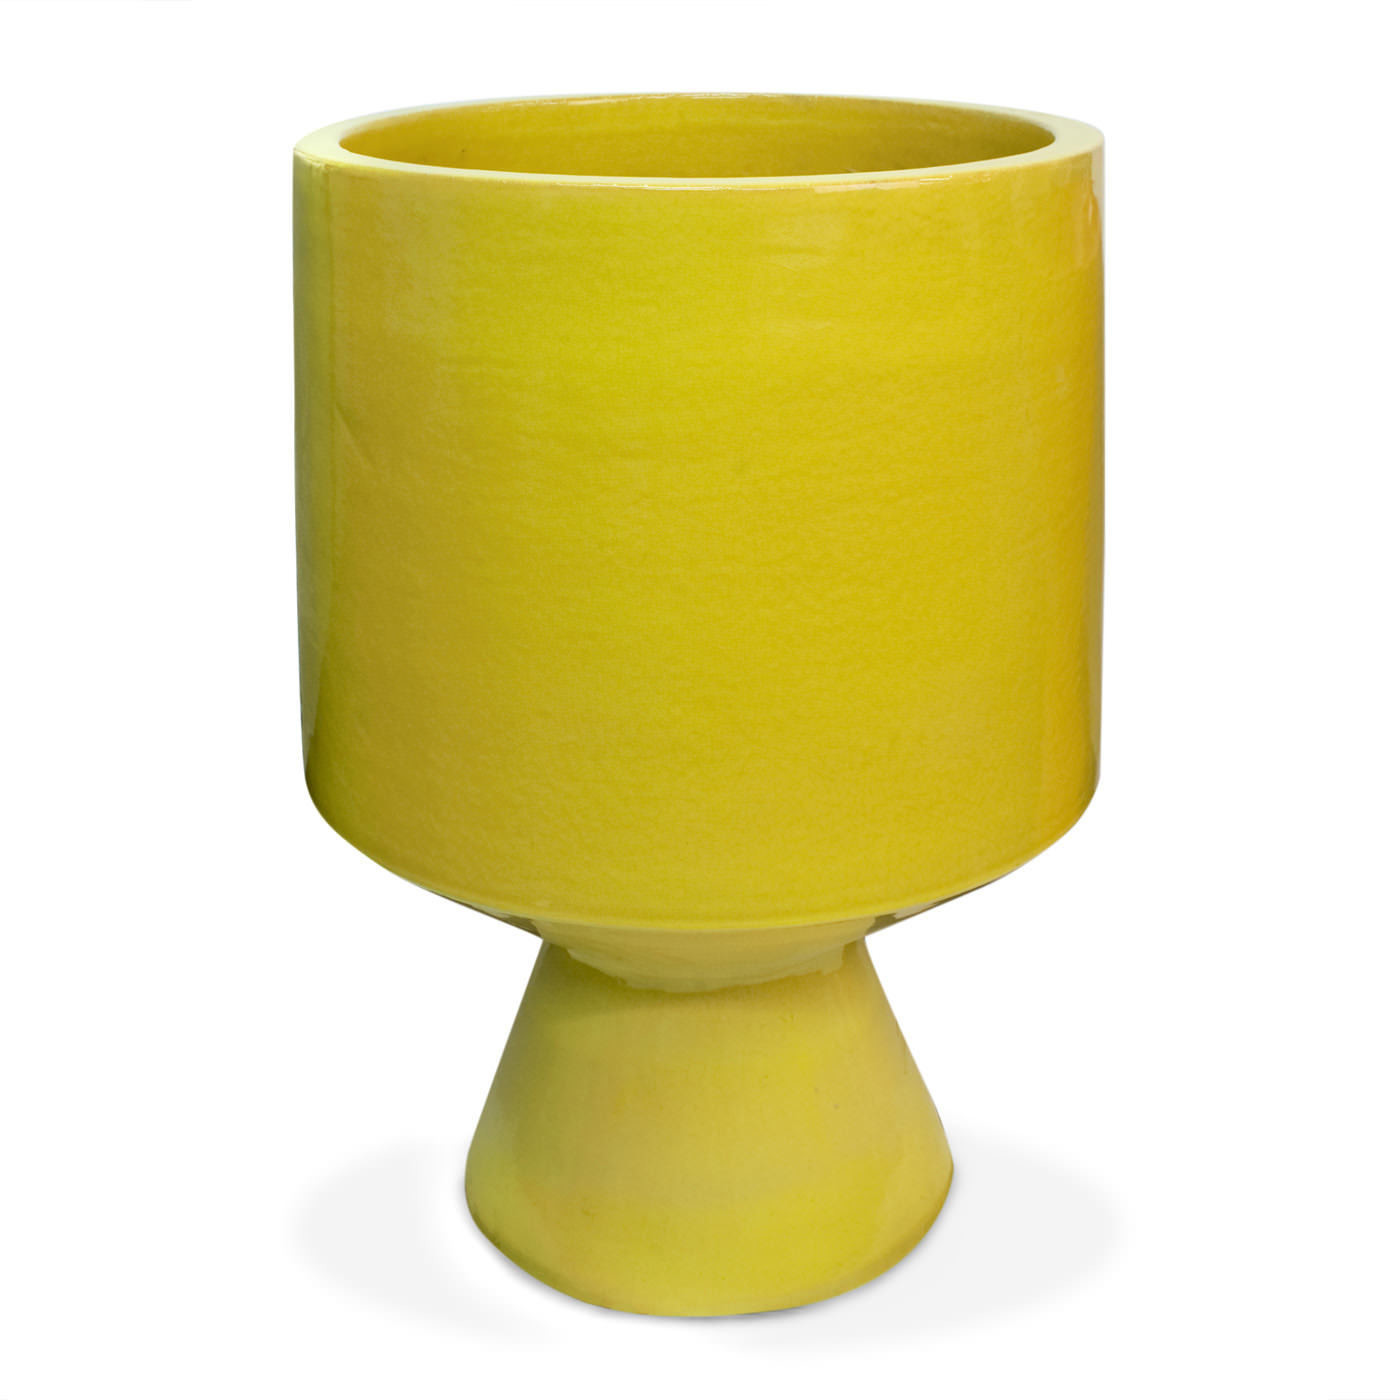 Jonathan Adler Yellowfins Okura Ceramic Planter